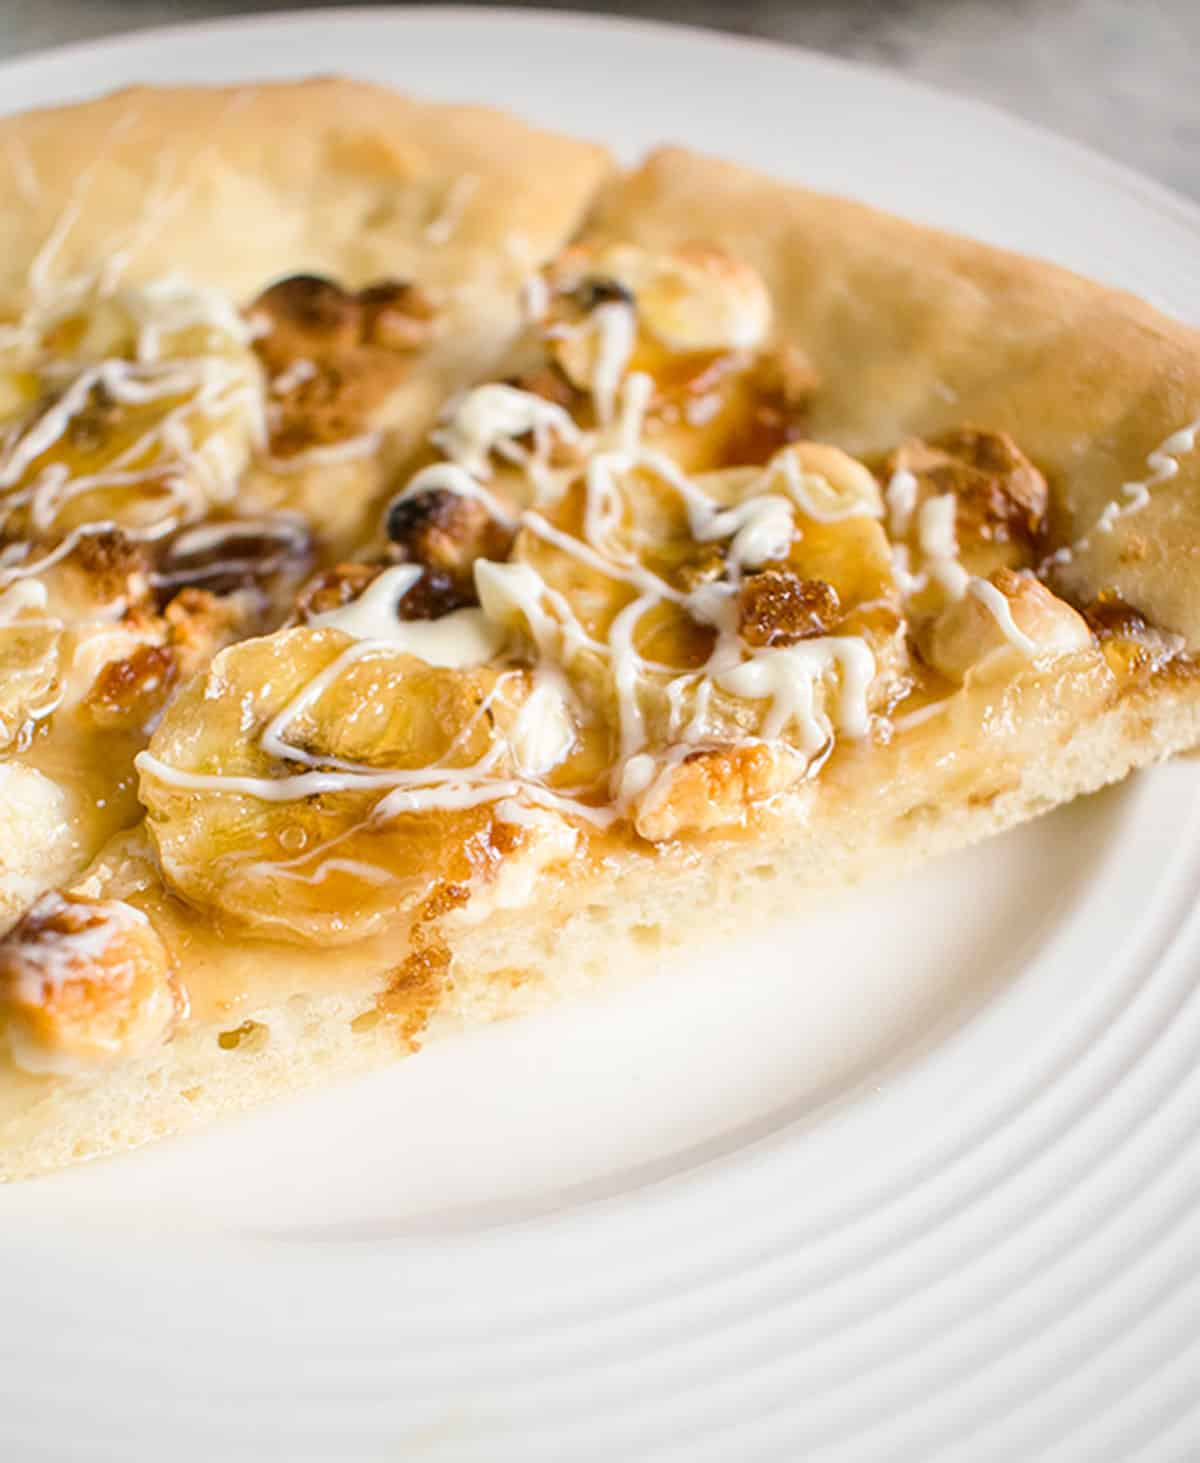 closeup of pizza with sliced bananas, drizzled white chocolate